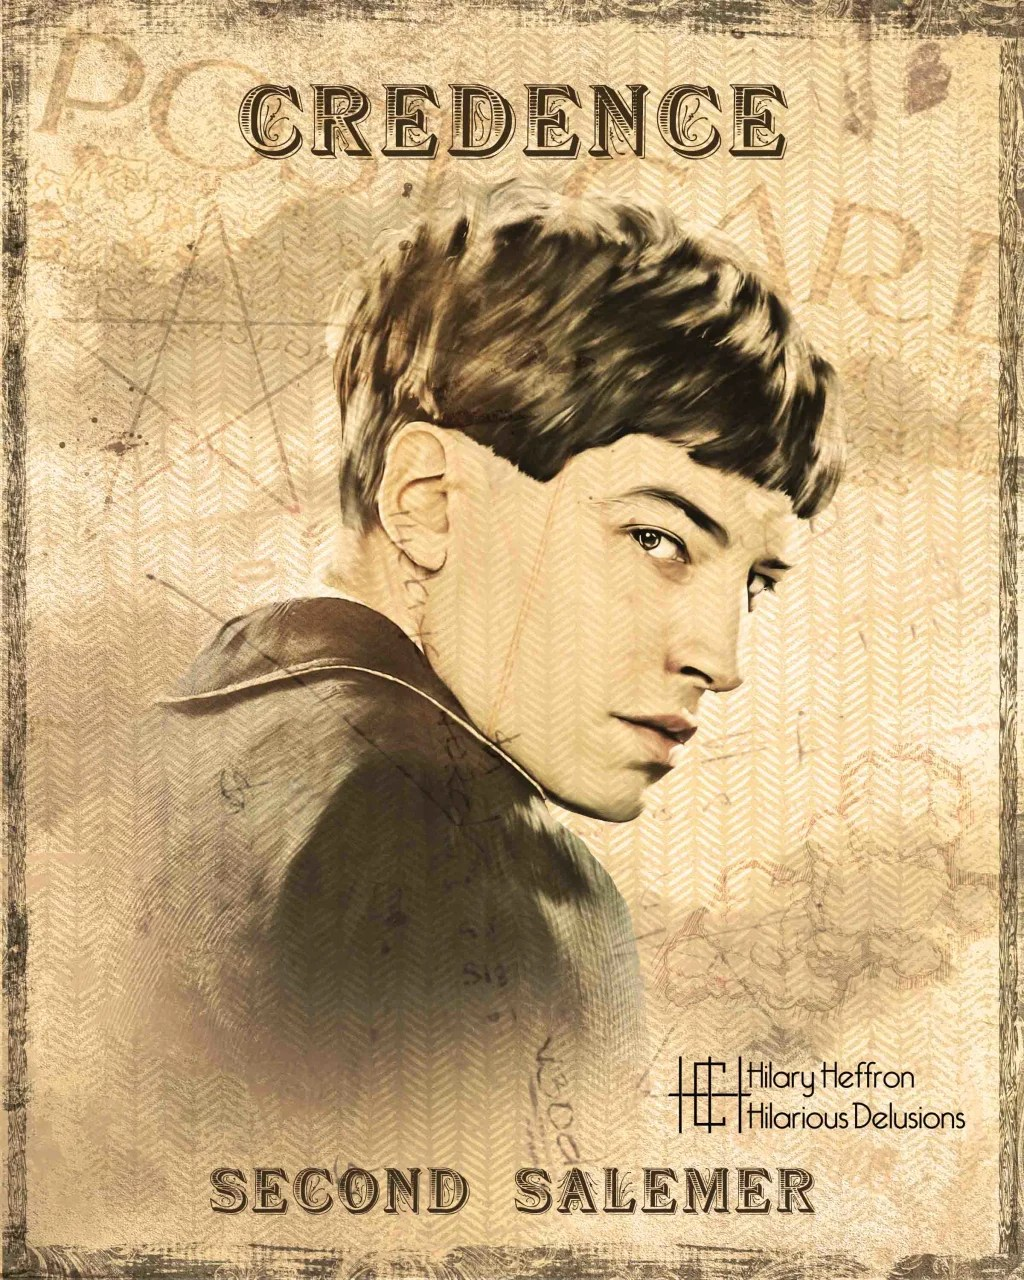 Credence Vintage Credence Barebone Book Page By Hilary Heffron